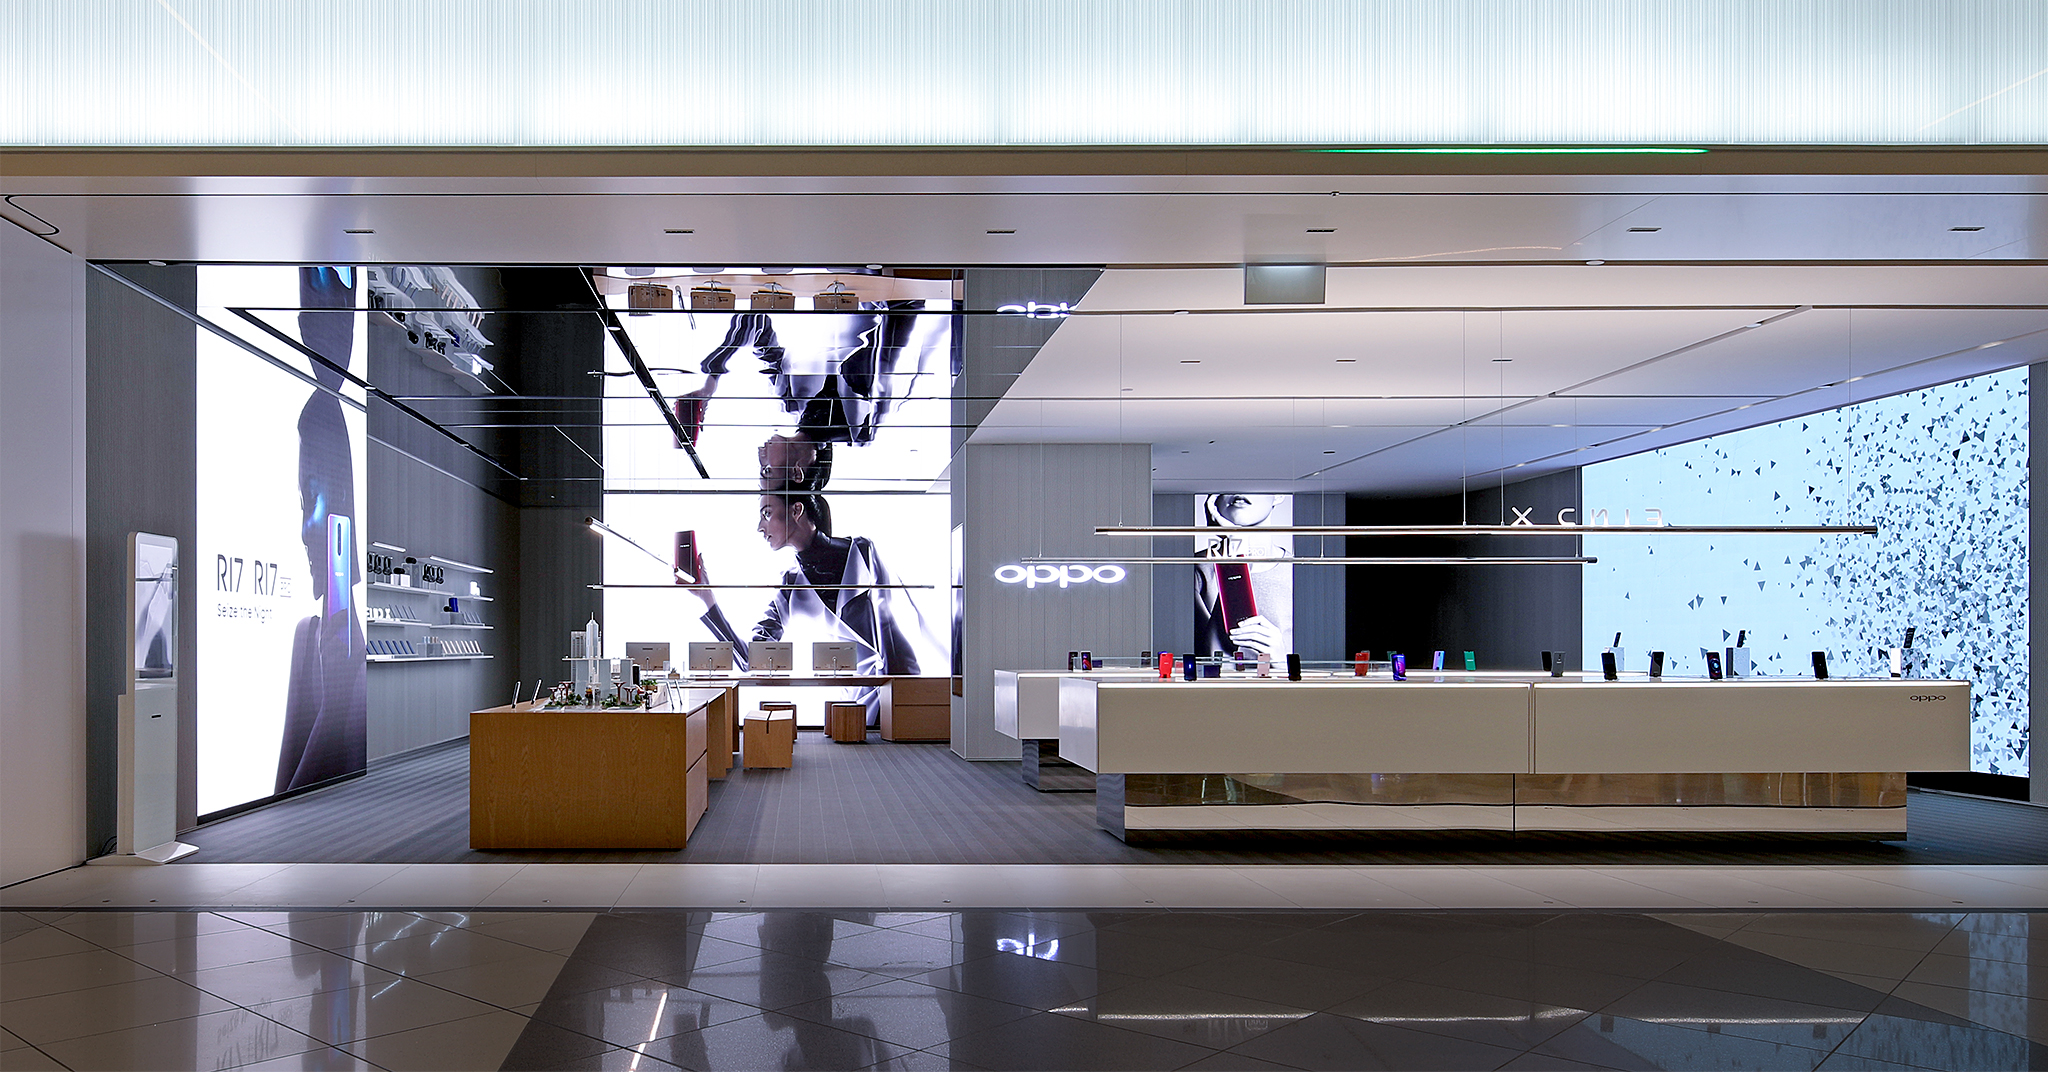 The OPPO 3.0 flagship store is located at the atrium on the ground floor between Towers 3 & 4 at Suntec City Mall.